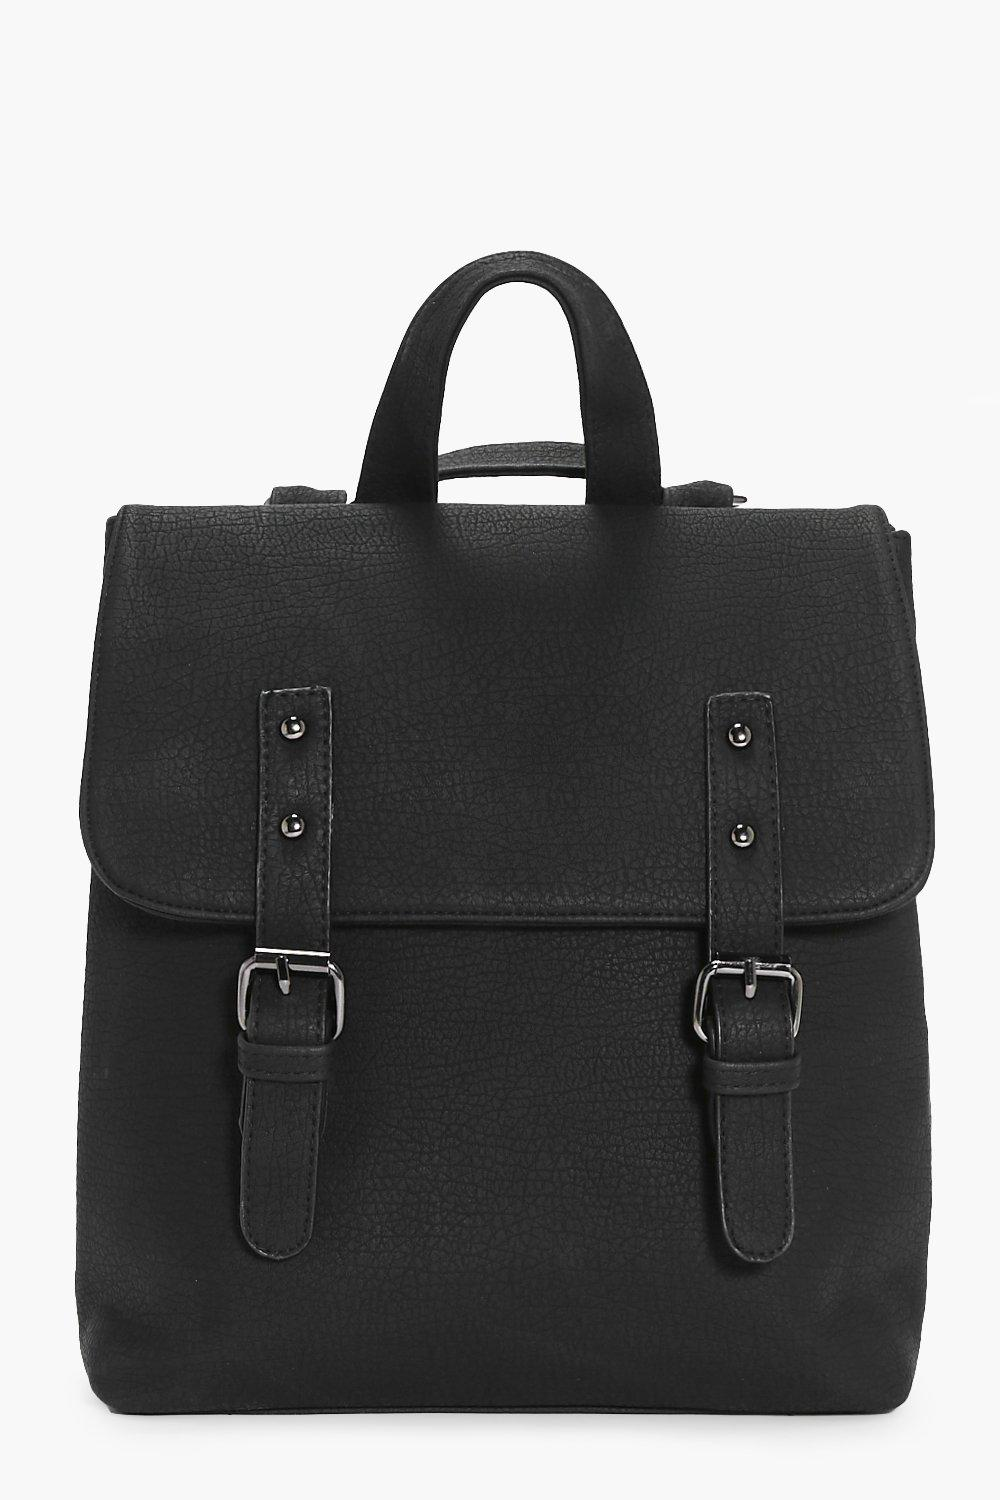 Buckle Detail Structured Backpack - black - Keira